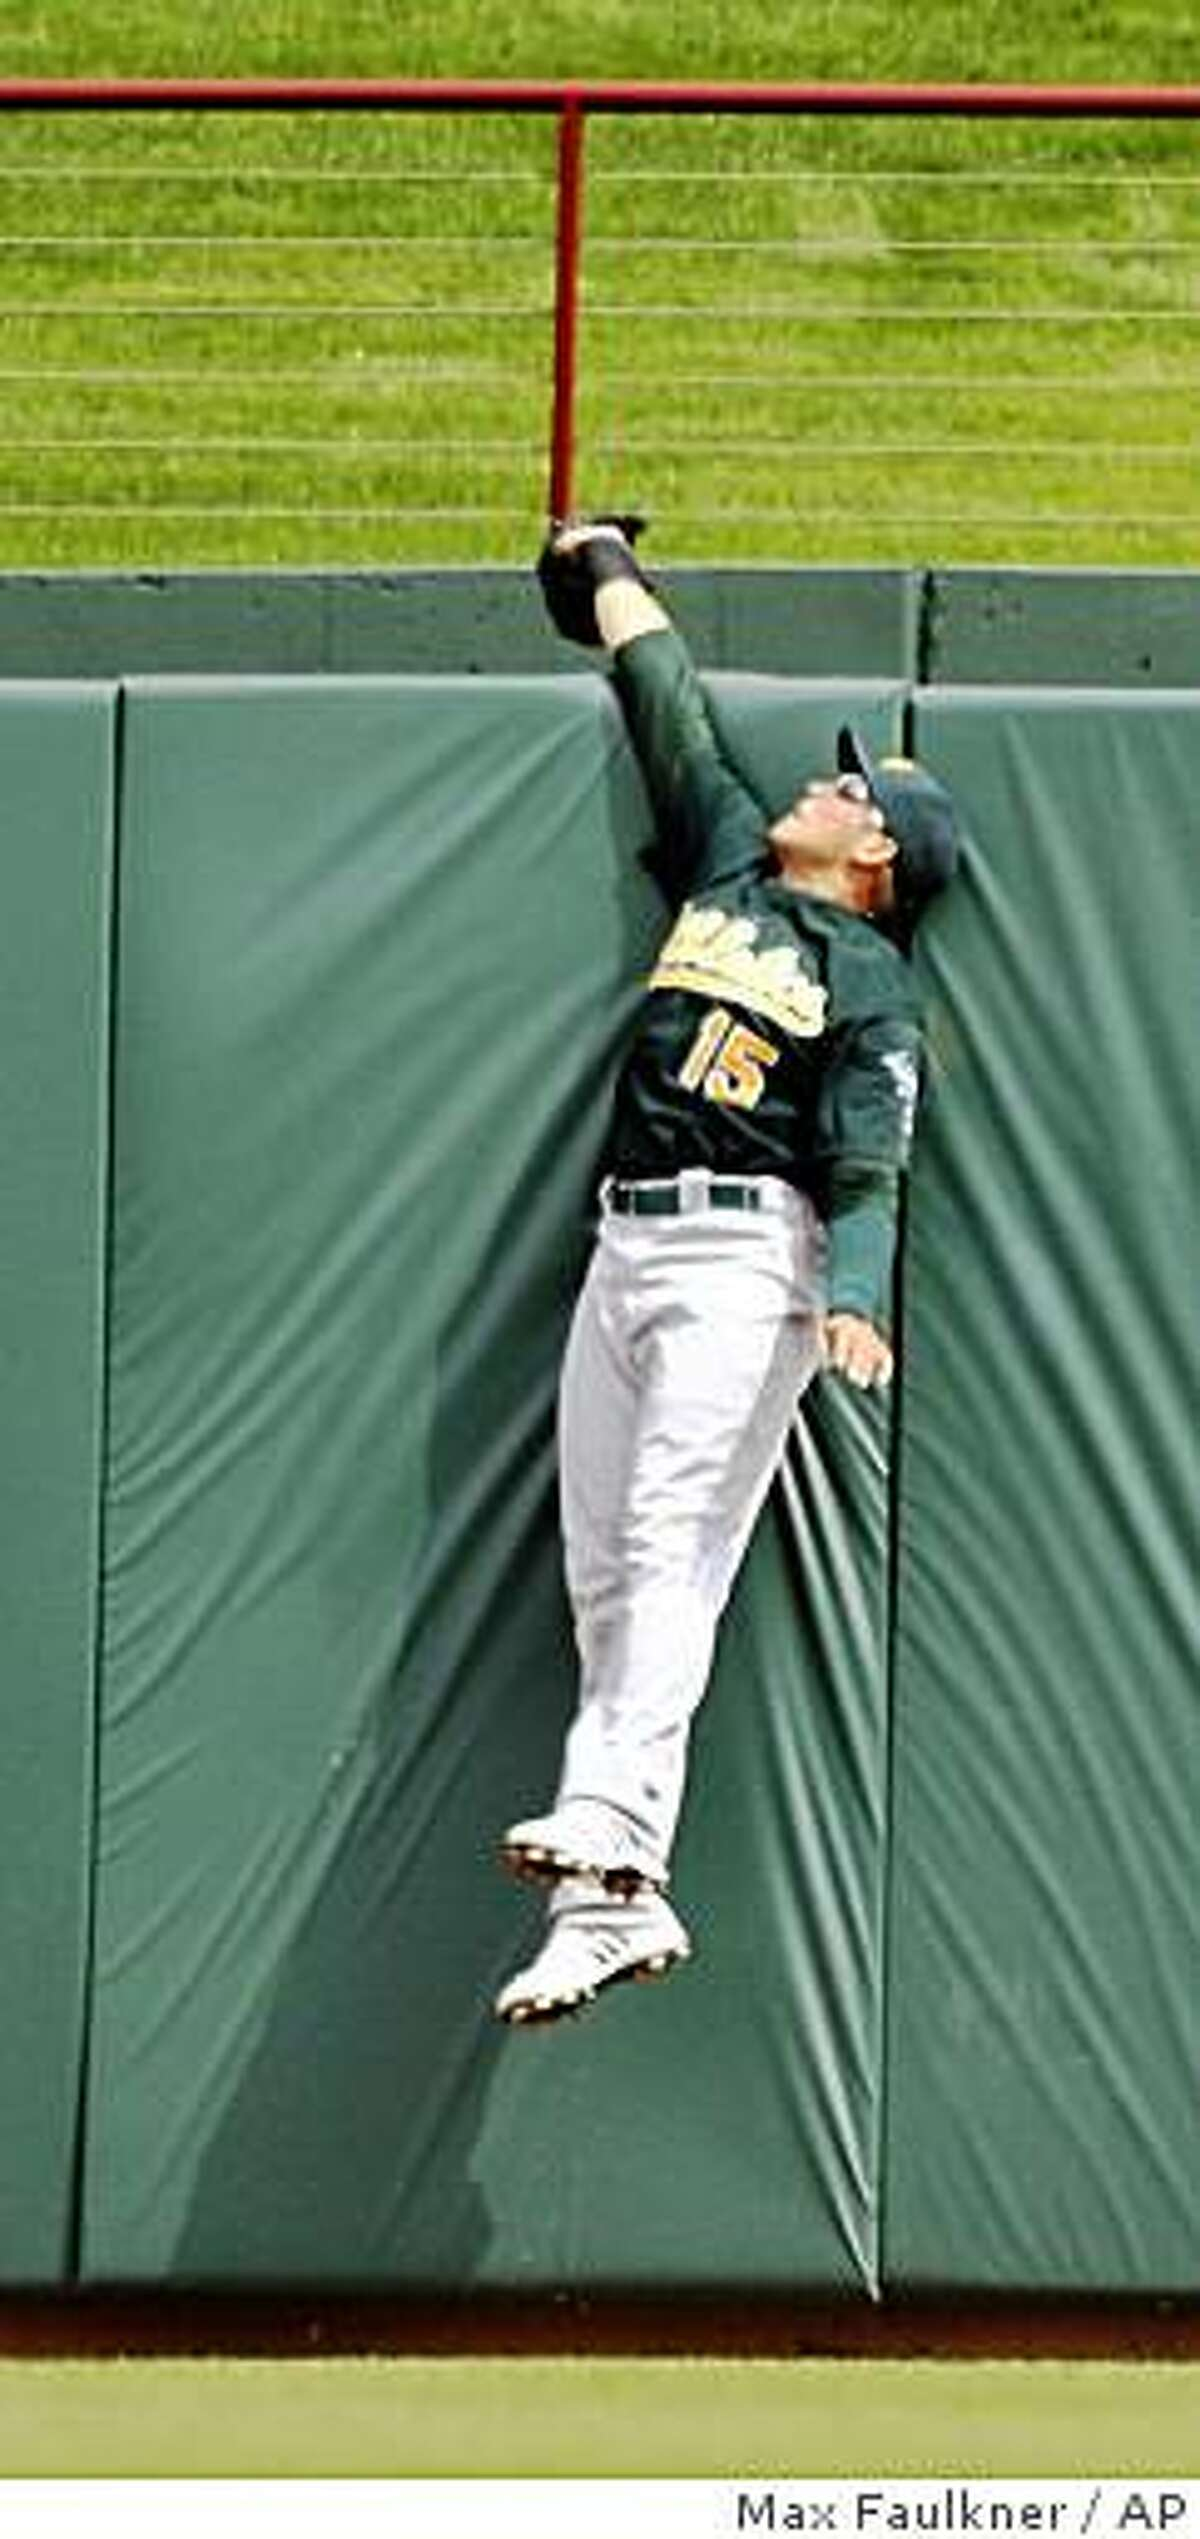 Oakland Athletics' Ryan Sweeney jumps and reaches over the fence to make the catch and rob Texas Rangers' Ian Kinsler of a three-run home run during the eighth inning of a baseball game in Arlington, Thursday, April 29, 2009. The A's won 4-2. (AP Photo/Fort Worth Star-Telegram, Max Faulkner) ** MAGS OUT, NO SALES, ONLINE OUT **